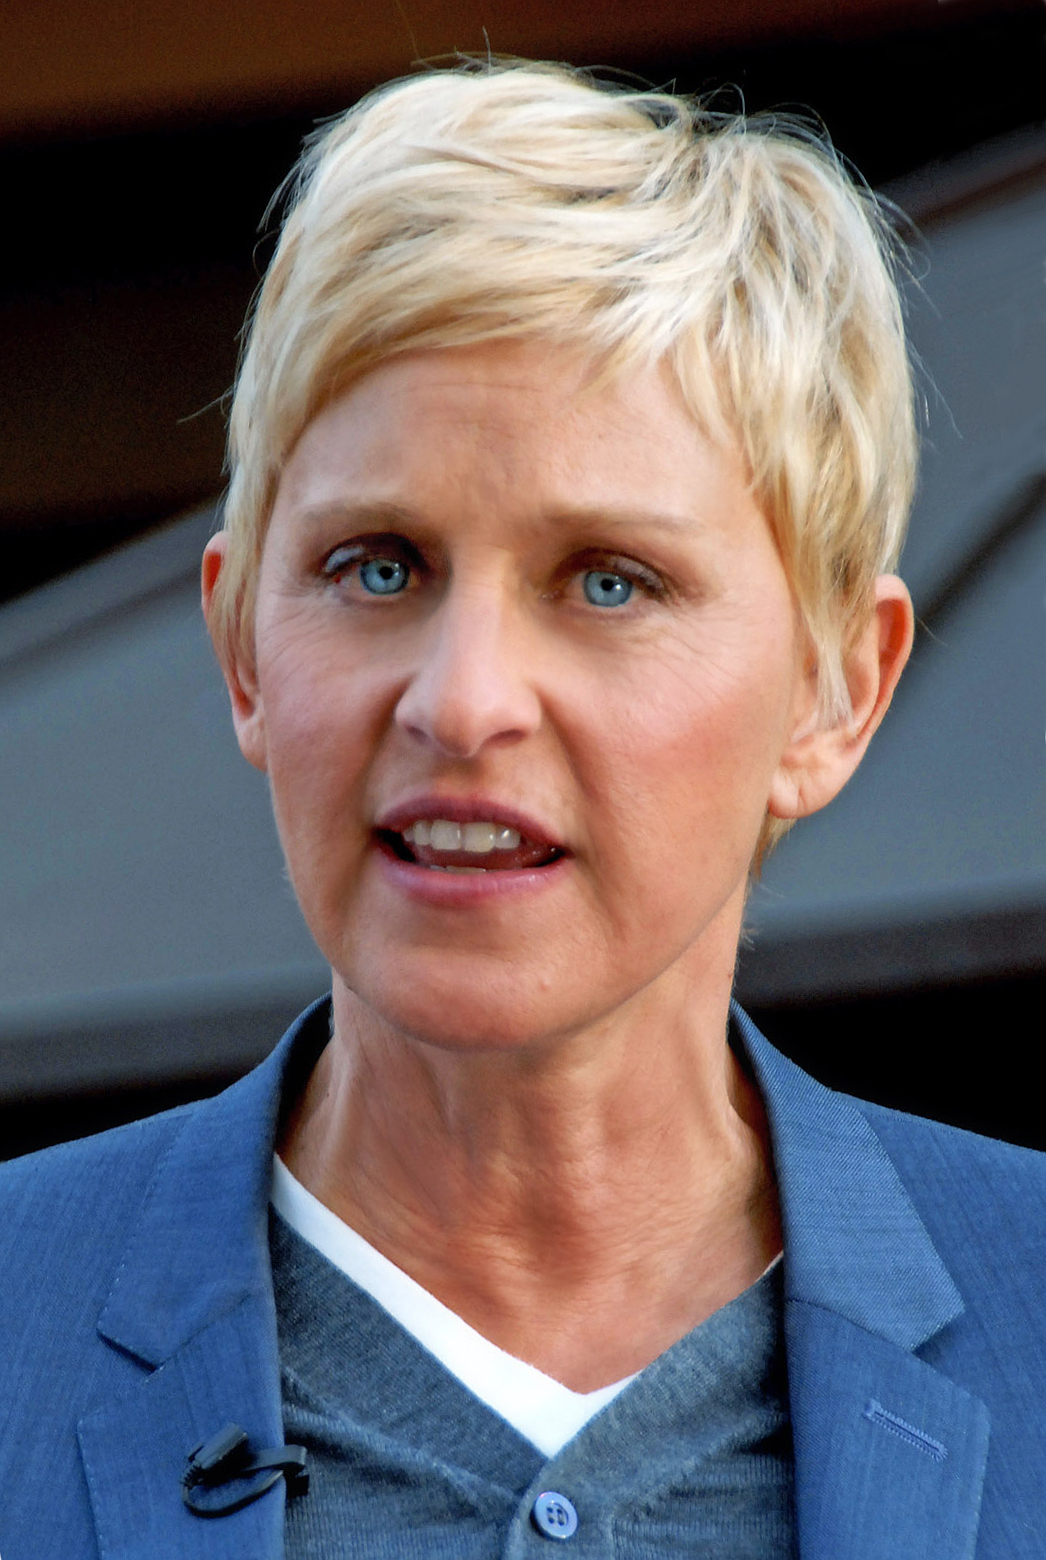 The 60-year old daughter of father Elliott DeGeneres and mother Betty DeGeneres Ellen DeGeneres in 2018 photo. Ellen DeGeneres earned a 70 million dollar salary - leaving the net worth at 285 million in 2018